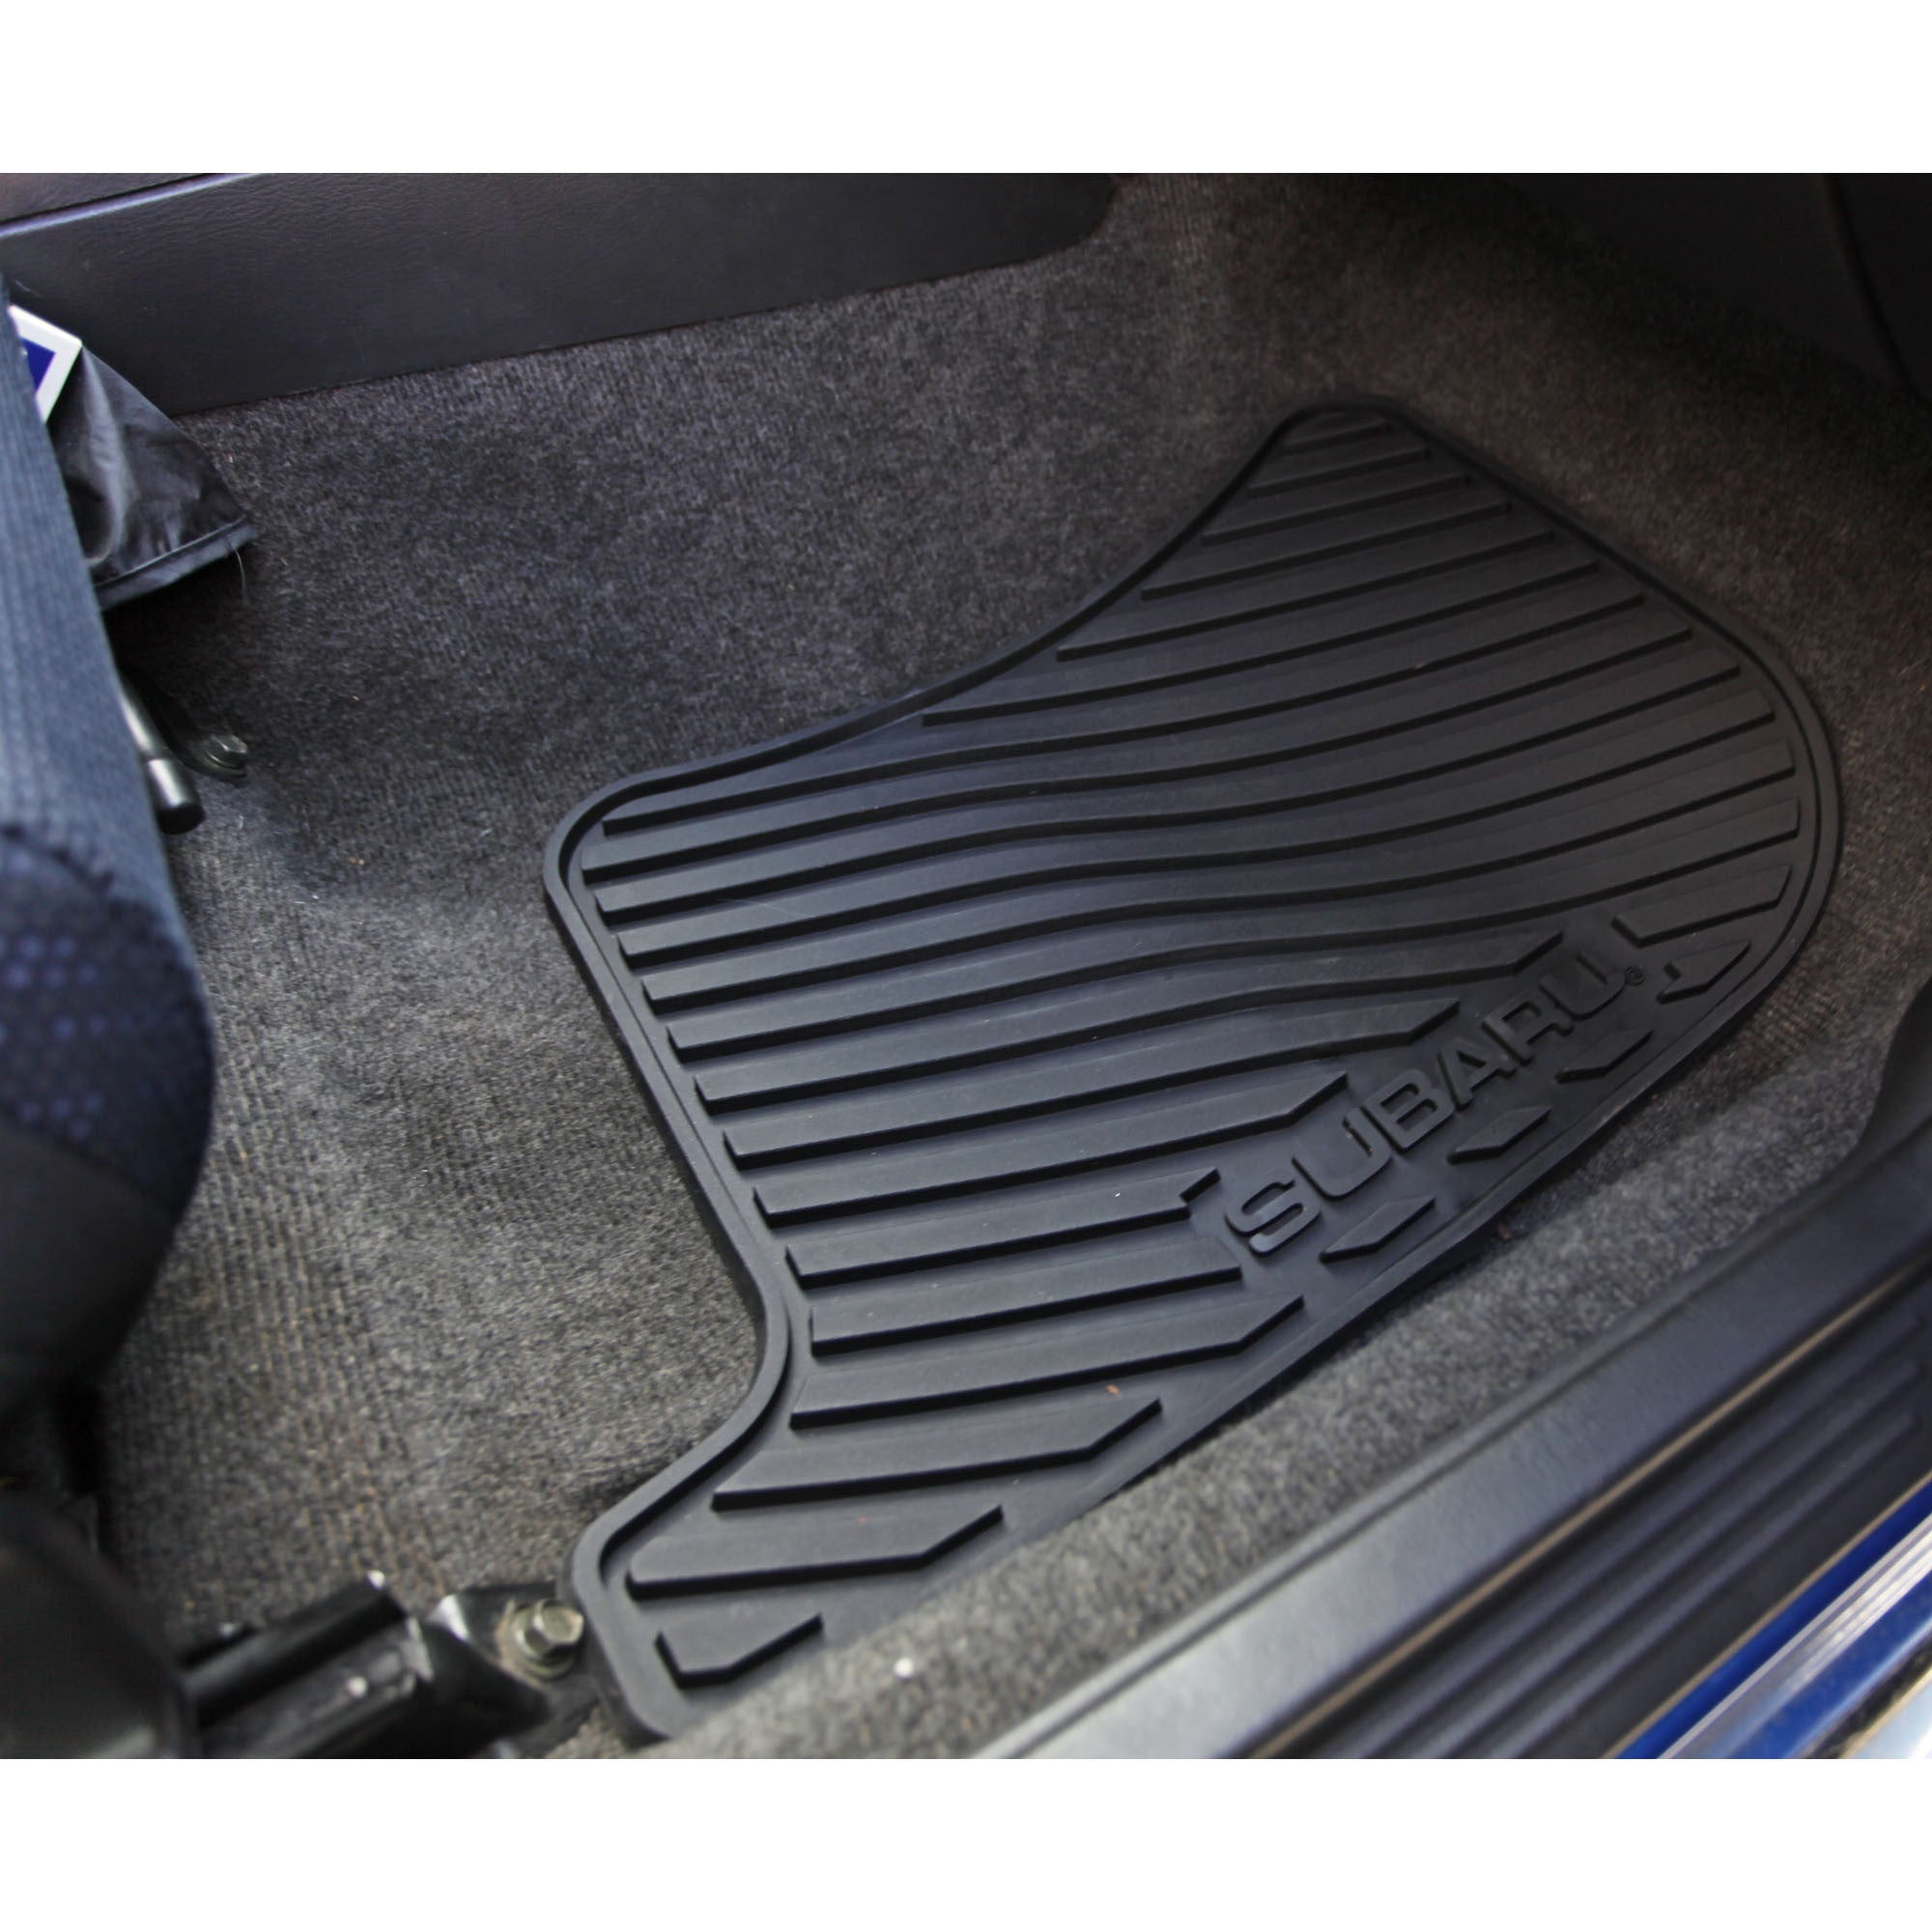 cargo floor rubber vinyl trunk wide car mats on overstock shipping mat x long oxgord inch pvc over orders home garden free trimmable product black